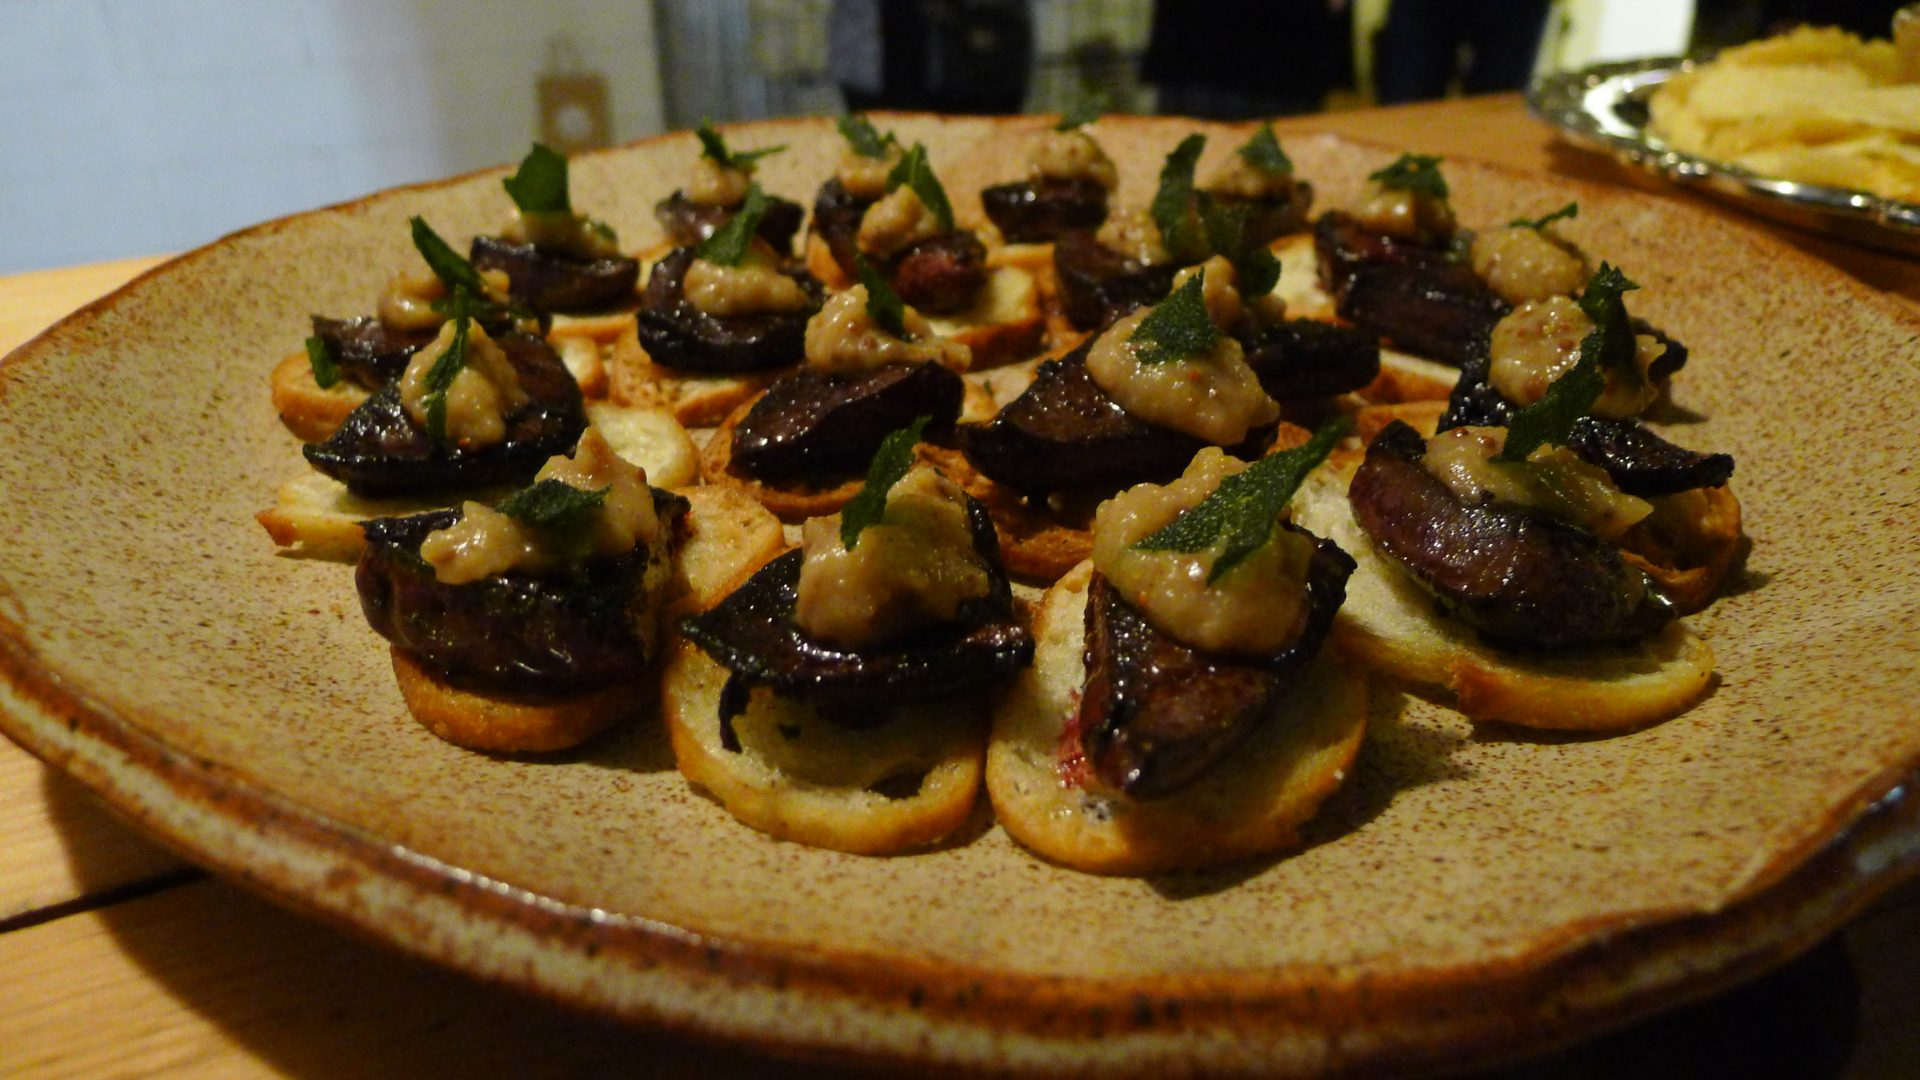 Seared Venison Liver on Crostini with Apple. A favourite of mine.